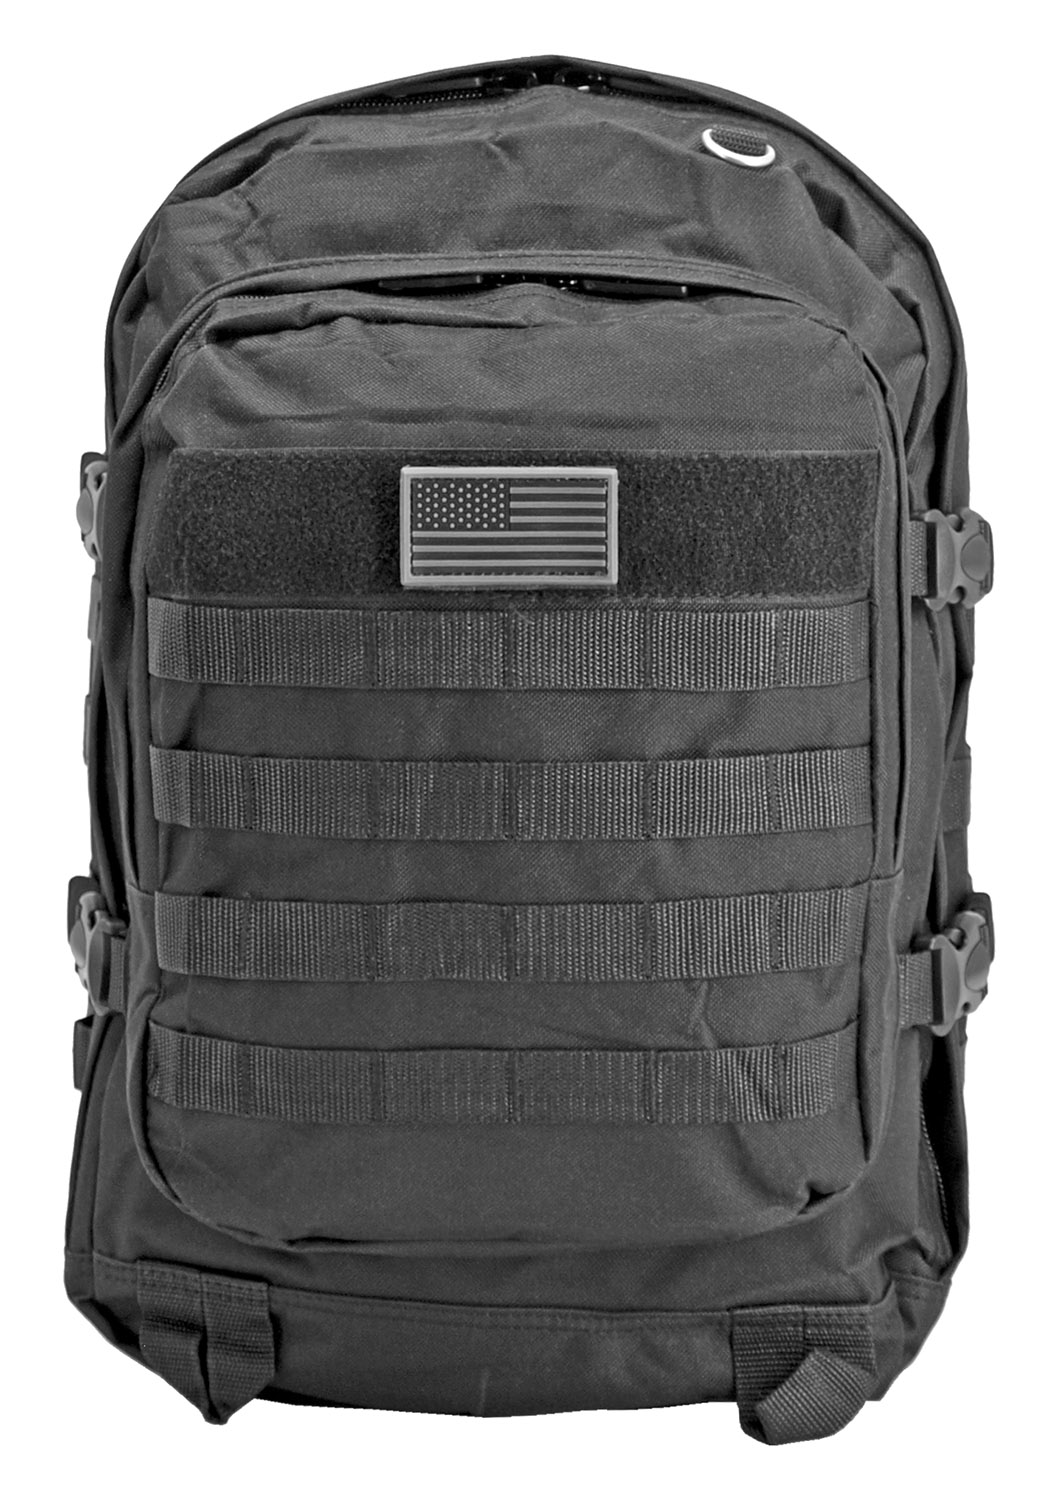 Military Molle Pack - Black